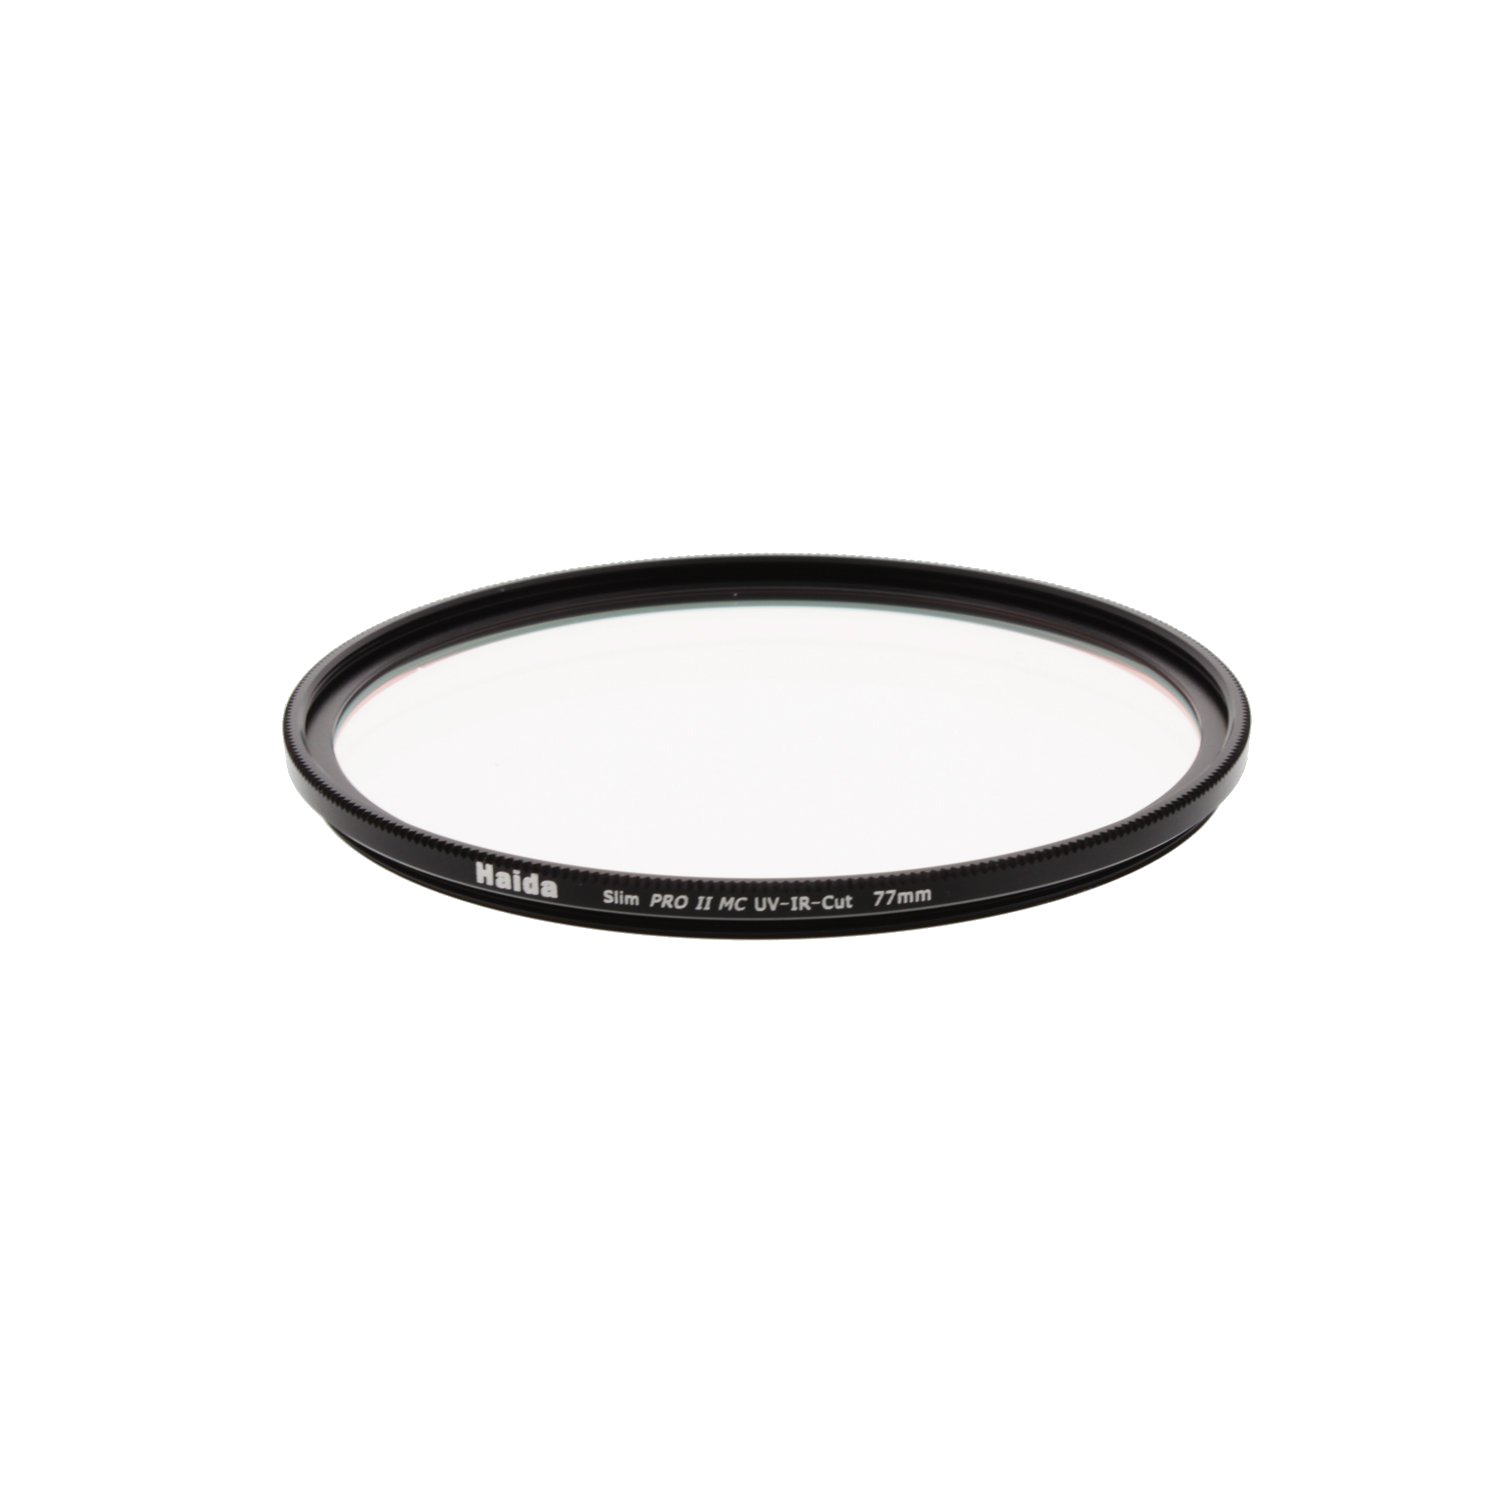 Haida Slim PROII Multi-coating UV-IR-Cut Filter 77mm